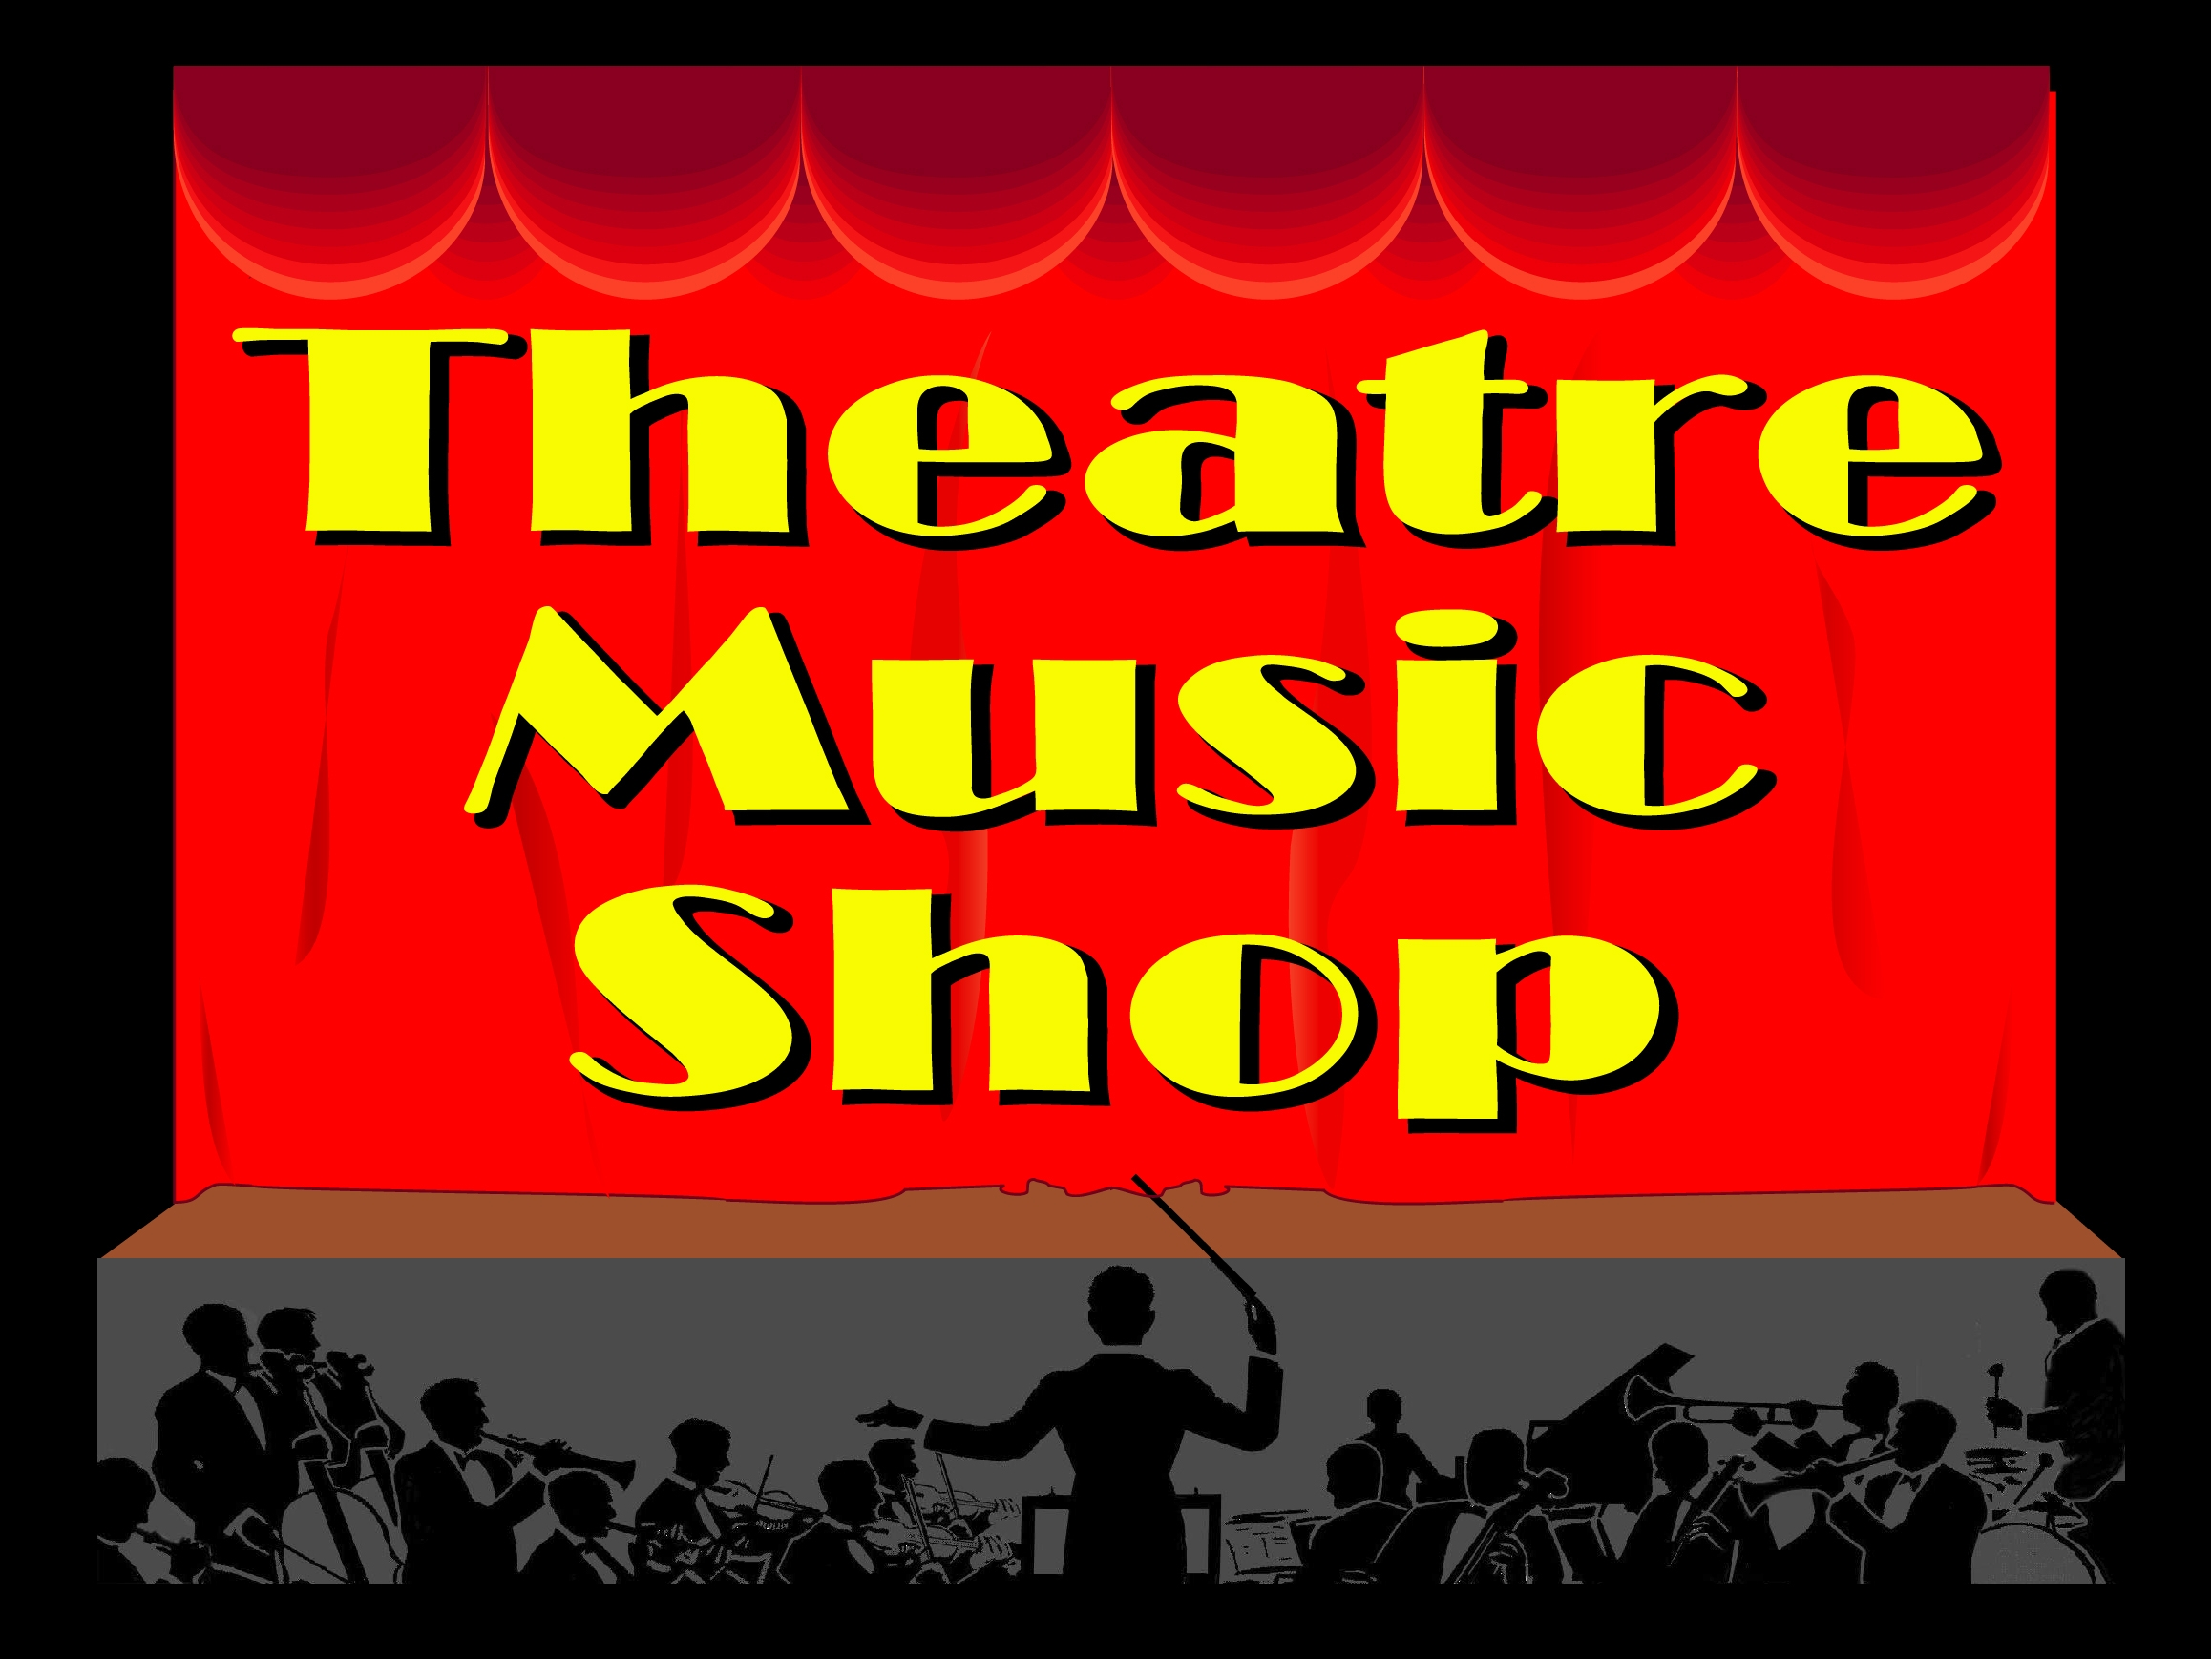 Theatre Music Shop